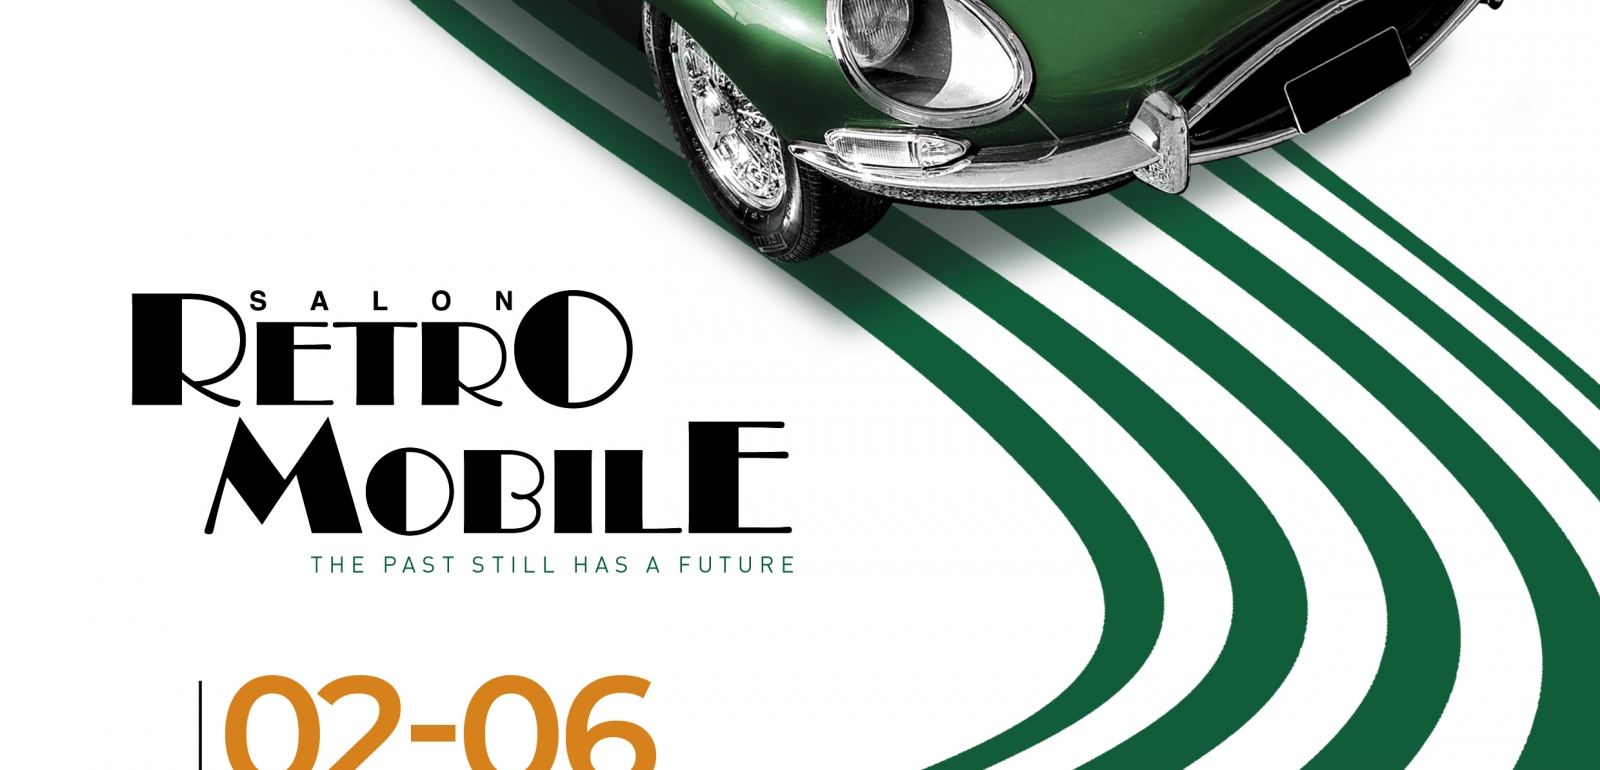 Retromobile report 2021 EN